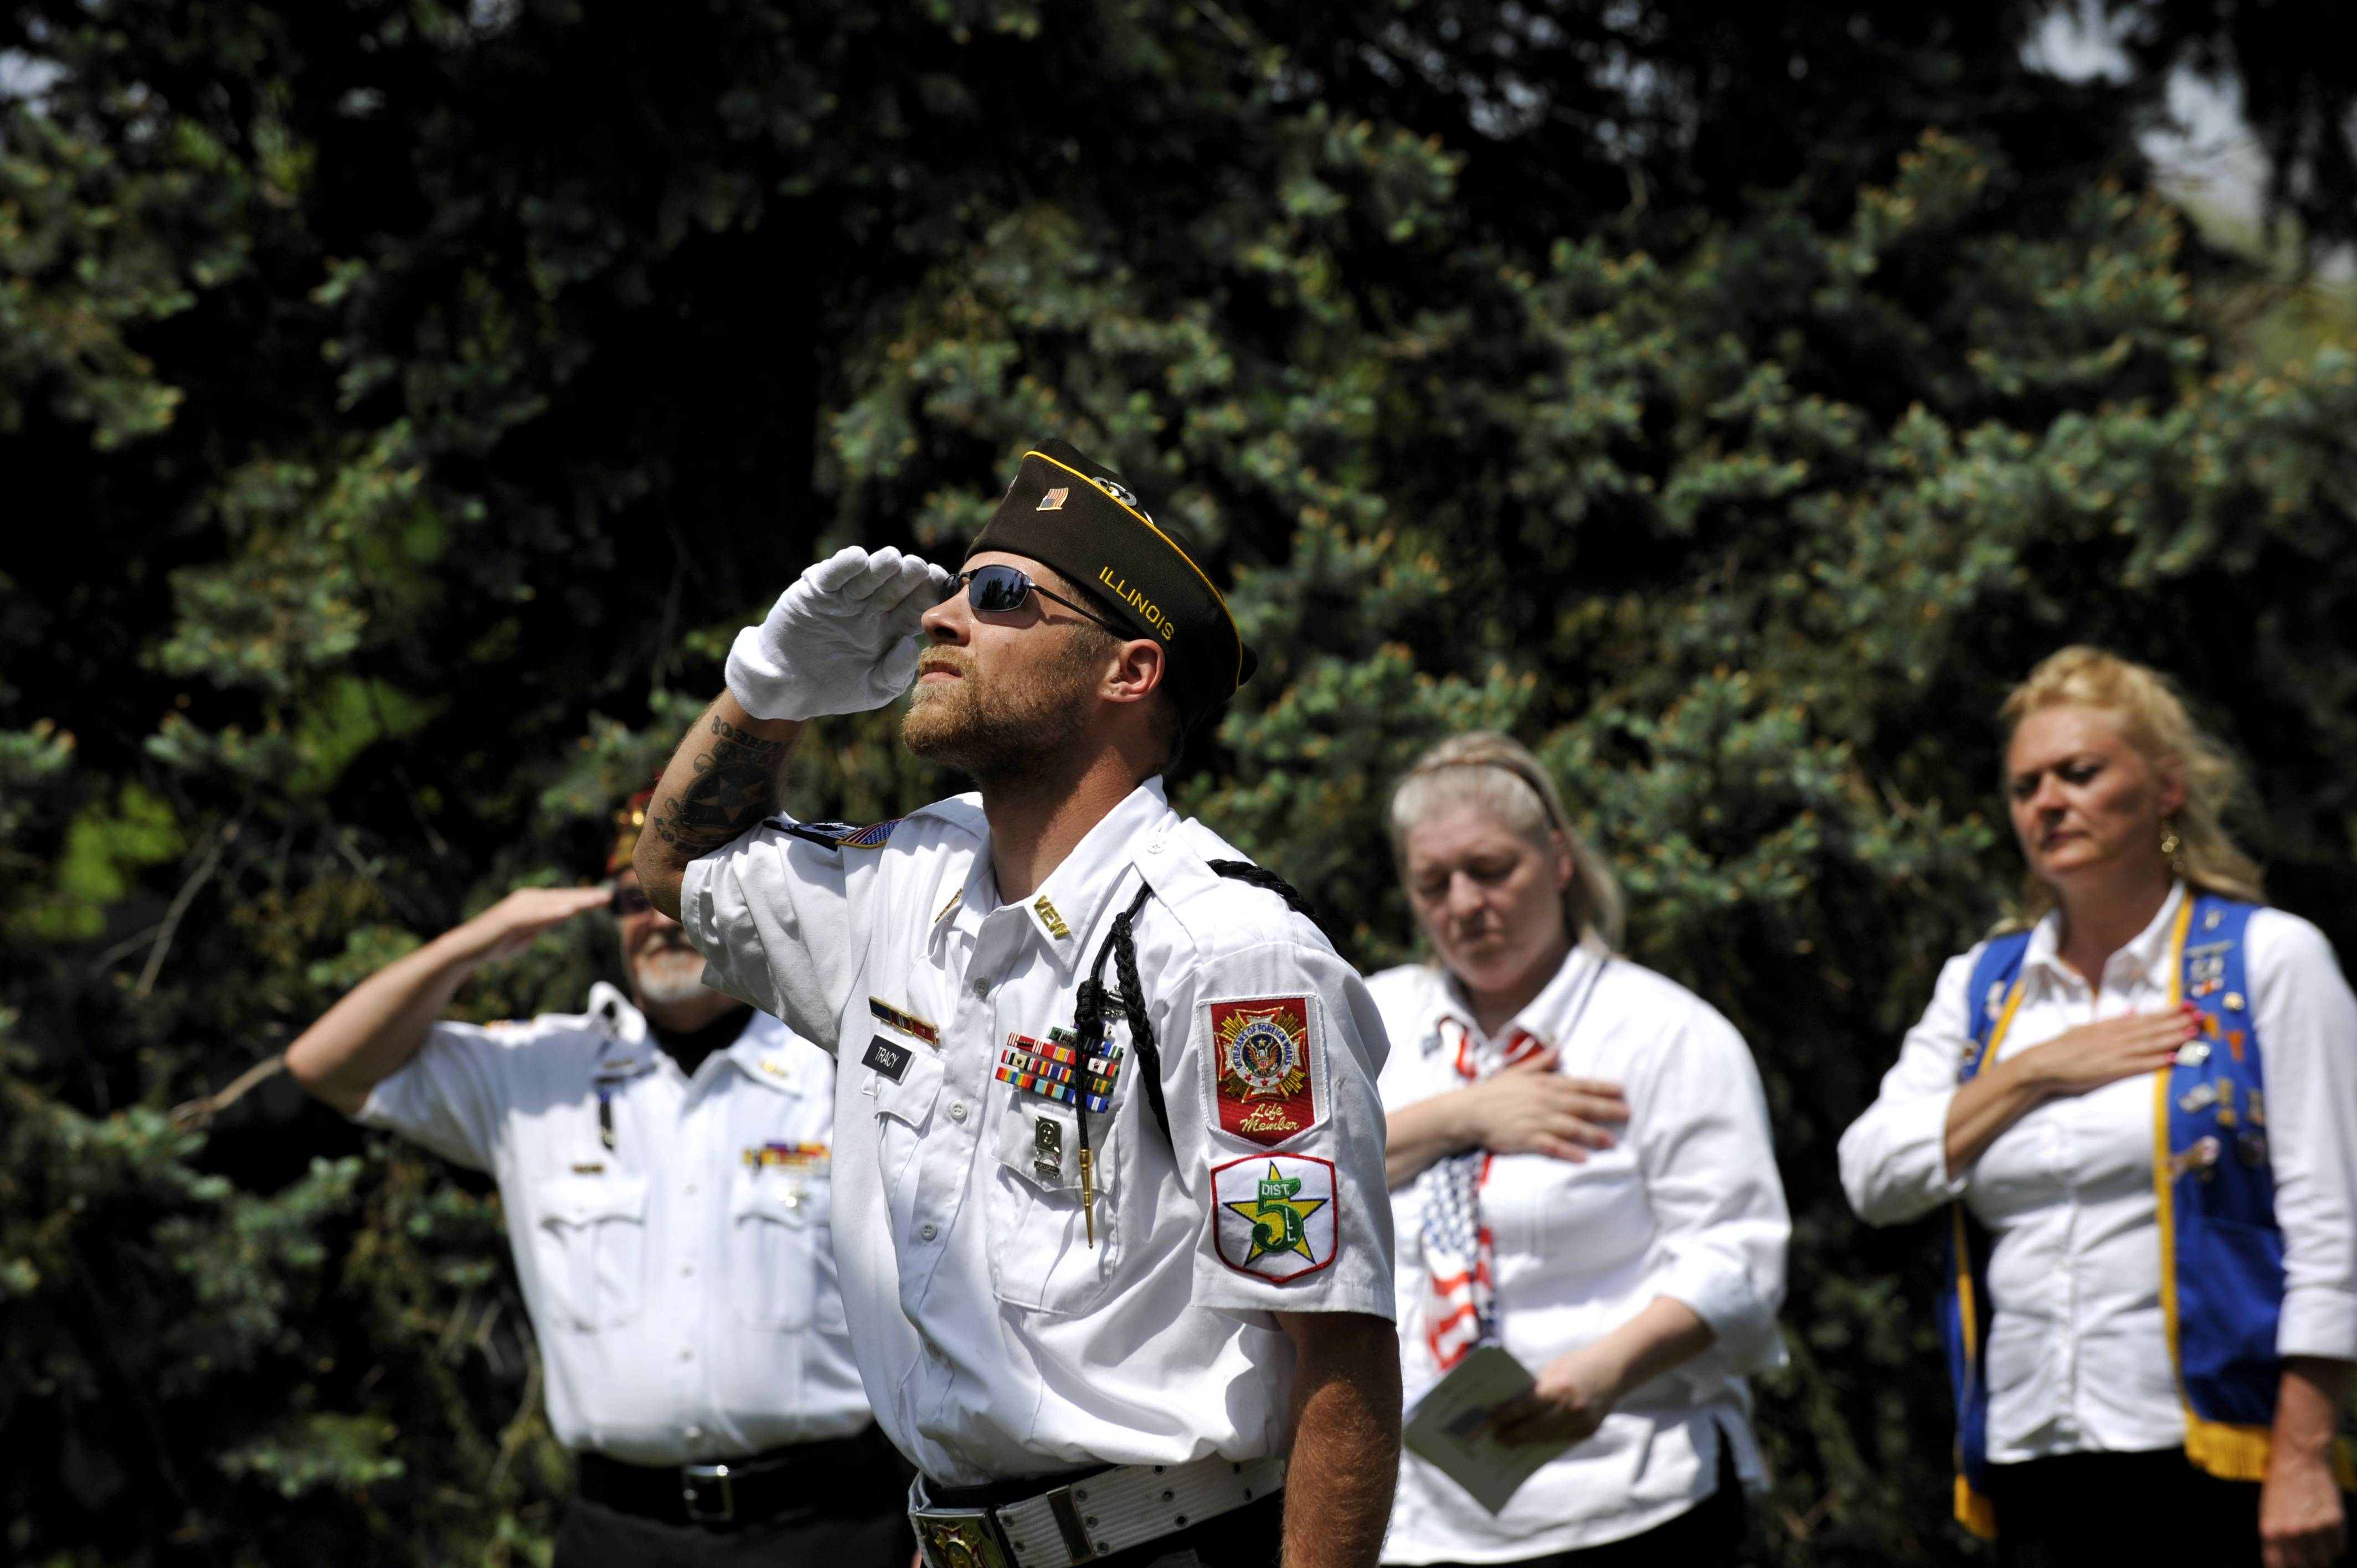 Adam Tracy of West Dundee gives a salute during the Memorial Day service at River Valley Memorial Gardens in West Dundee. Also pictured, left to right, are Patrick Green and Jessica Gospodarek, both of Carpentersville, and Amy Lessing of Elgin.